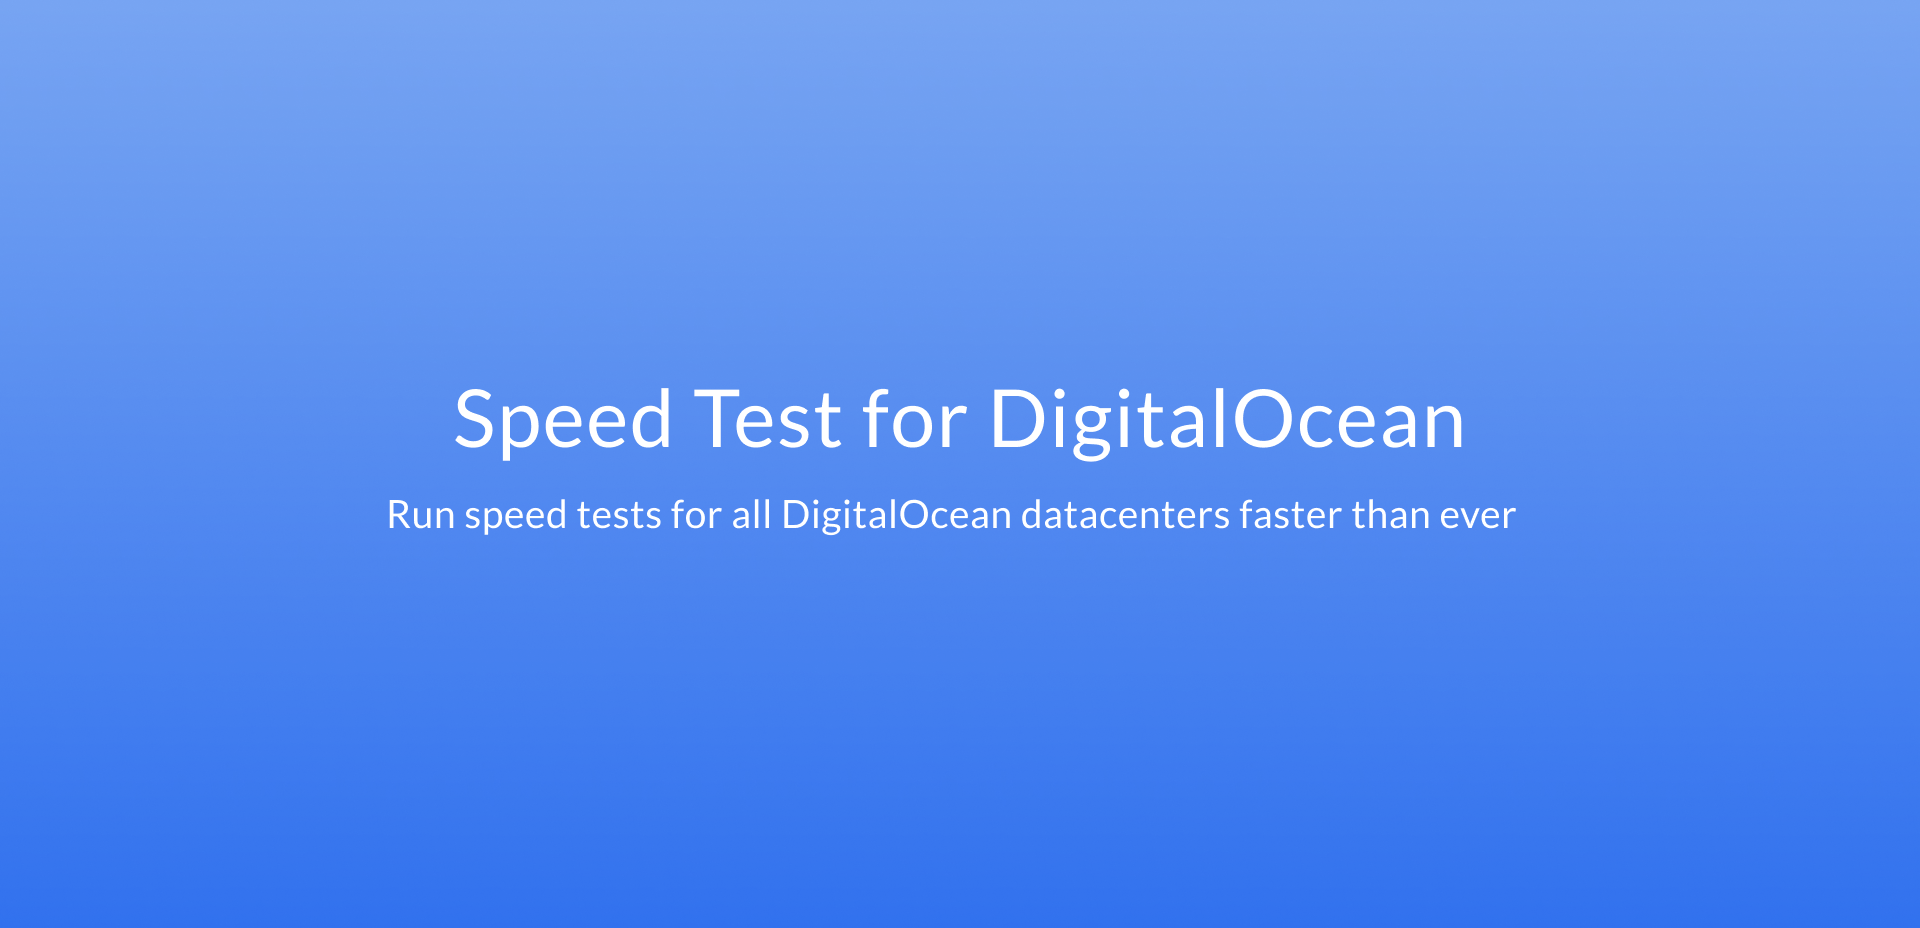 Speed Test for DigitalOcean